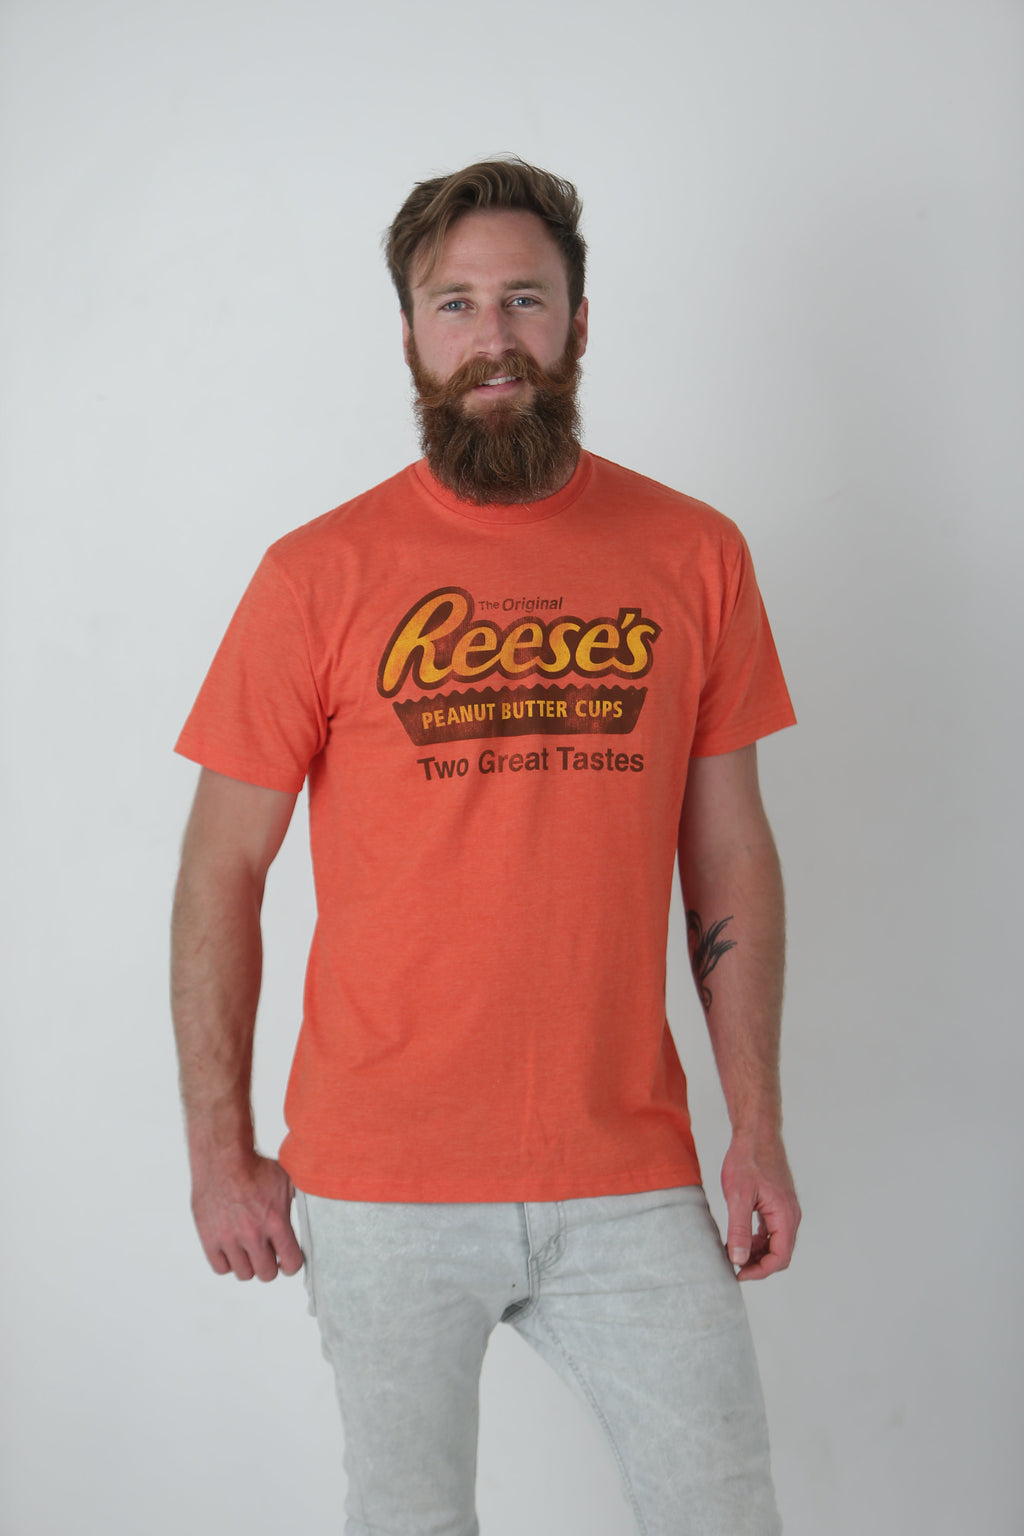 Reese's Peanut Butter Cups T-Shirt - Tractor Beam Apparel